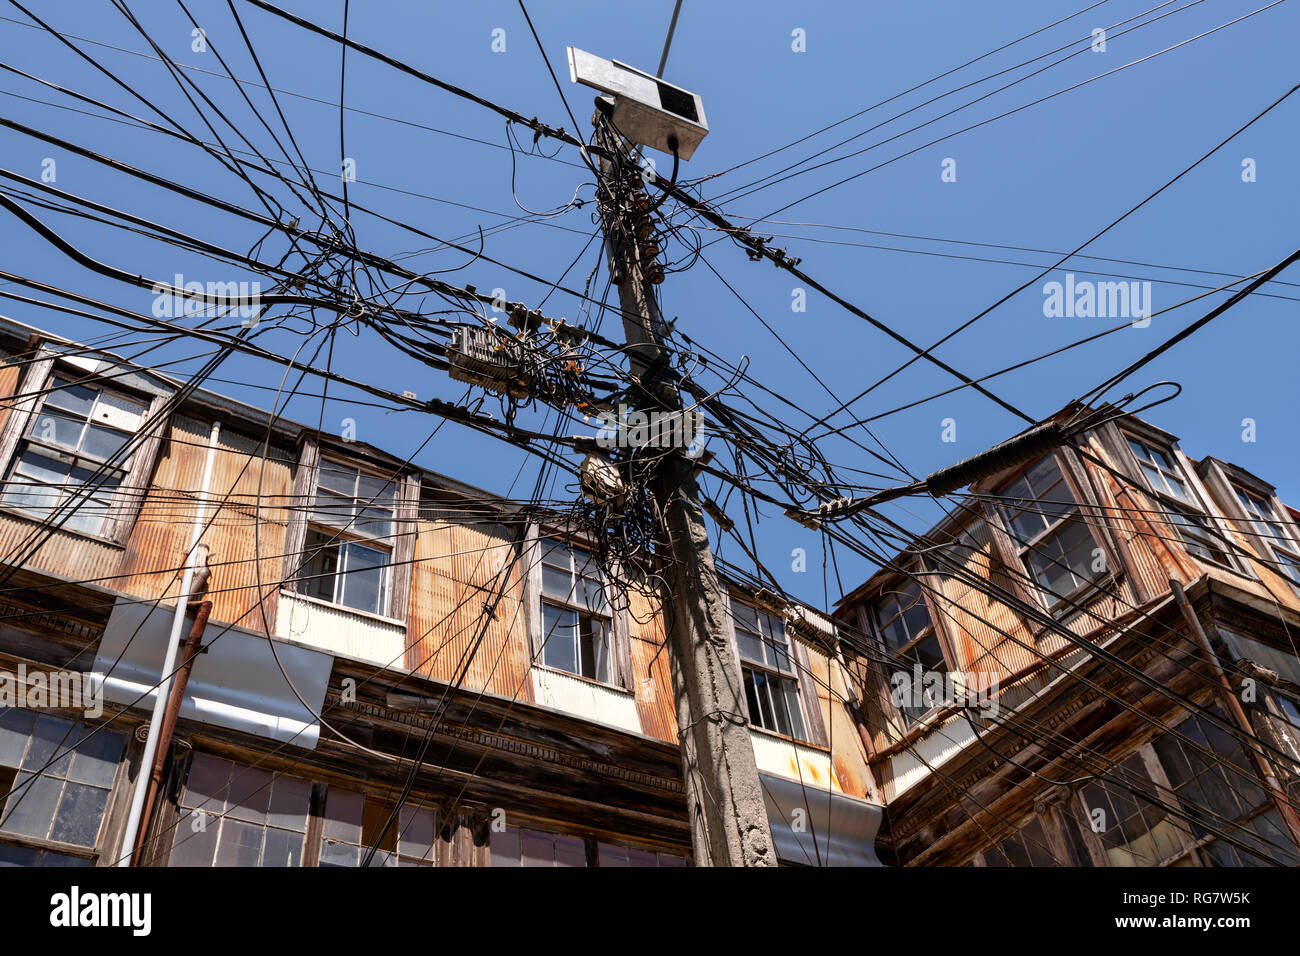 A seemingly tangled and disorganised collection of overhead cables in a street in Valparaiso, Chile. - Stock Image